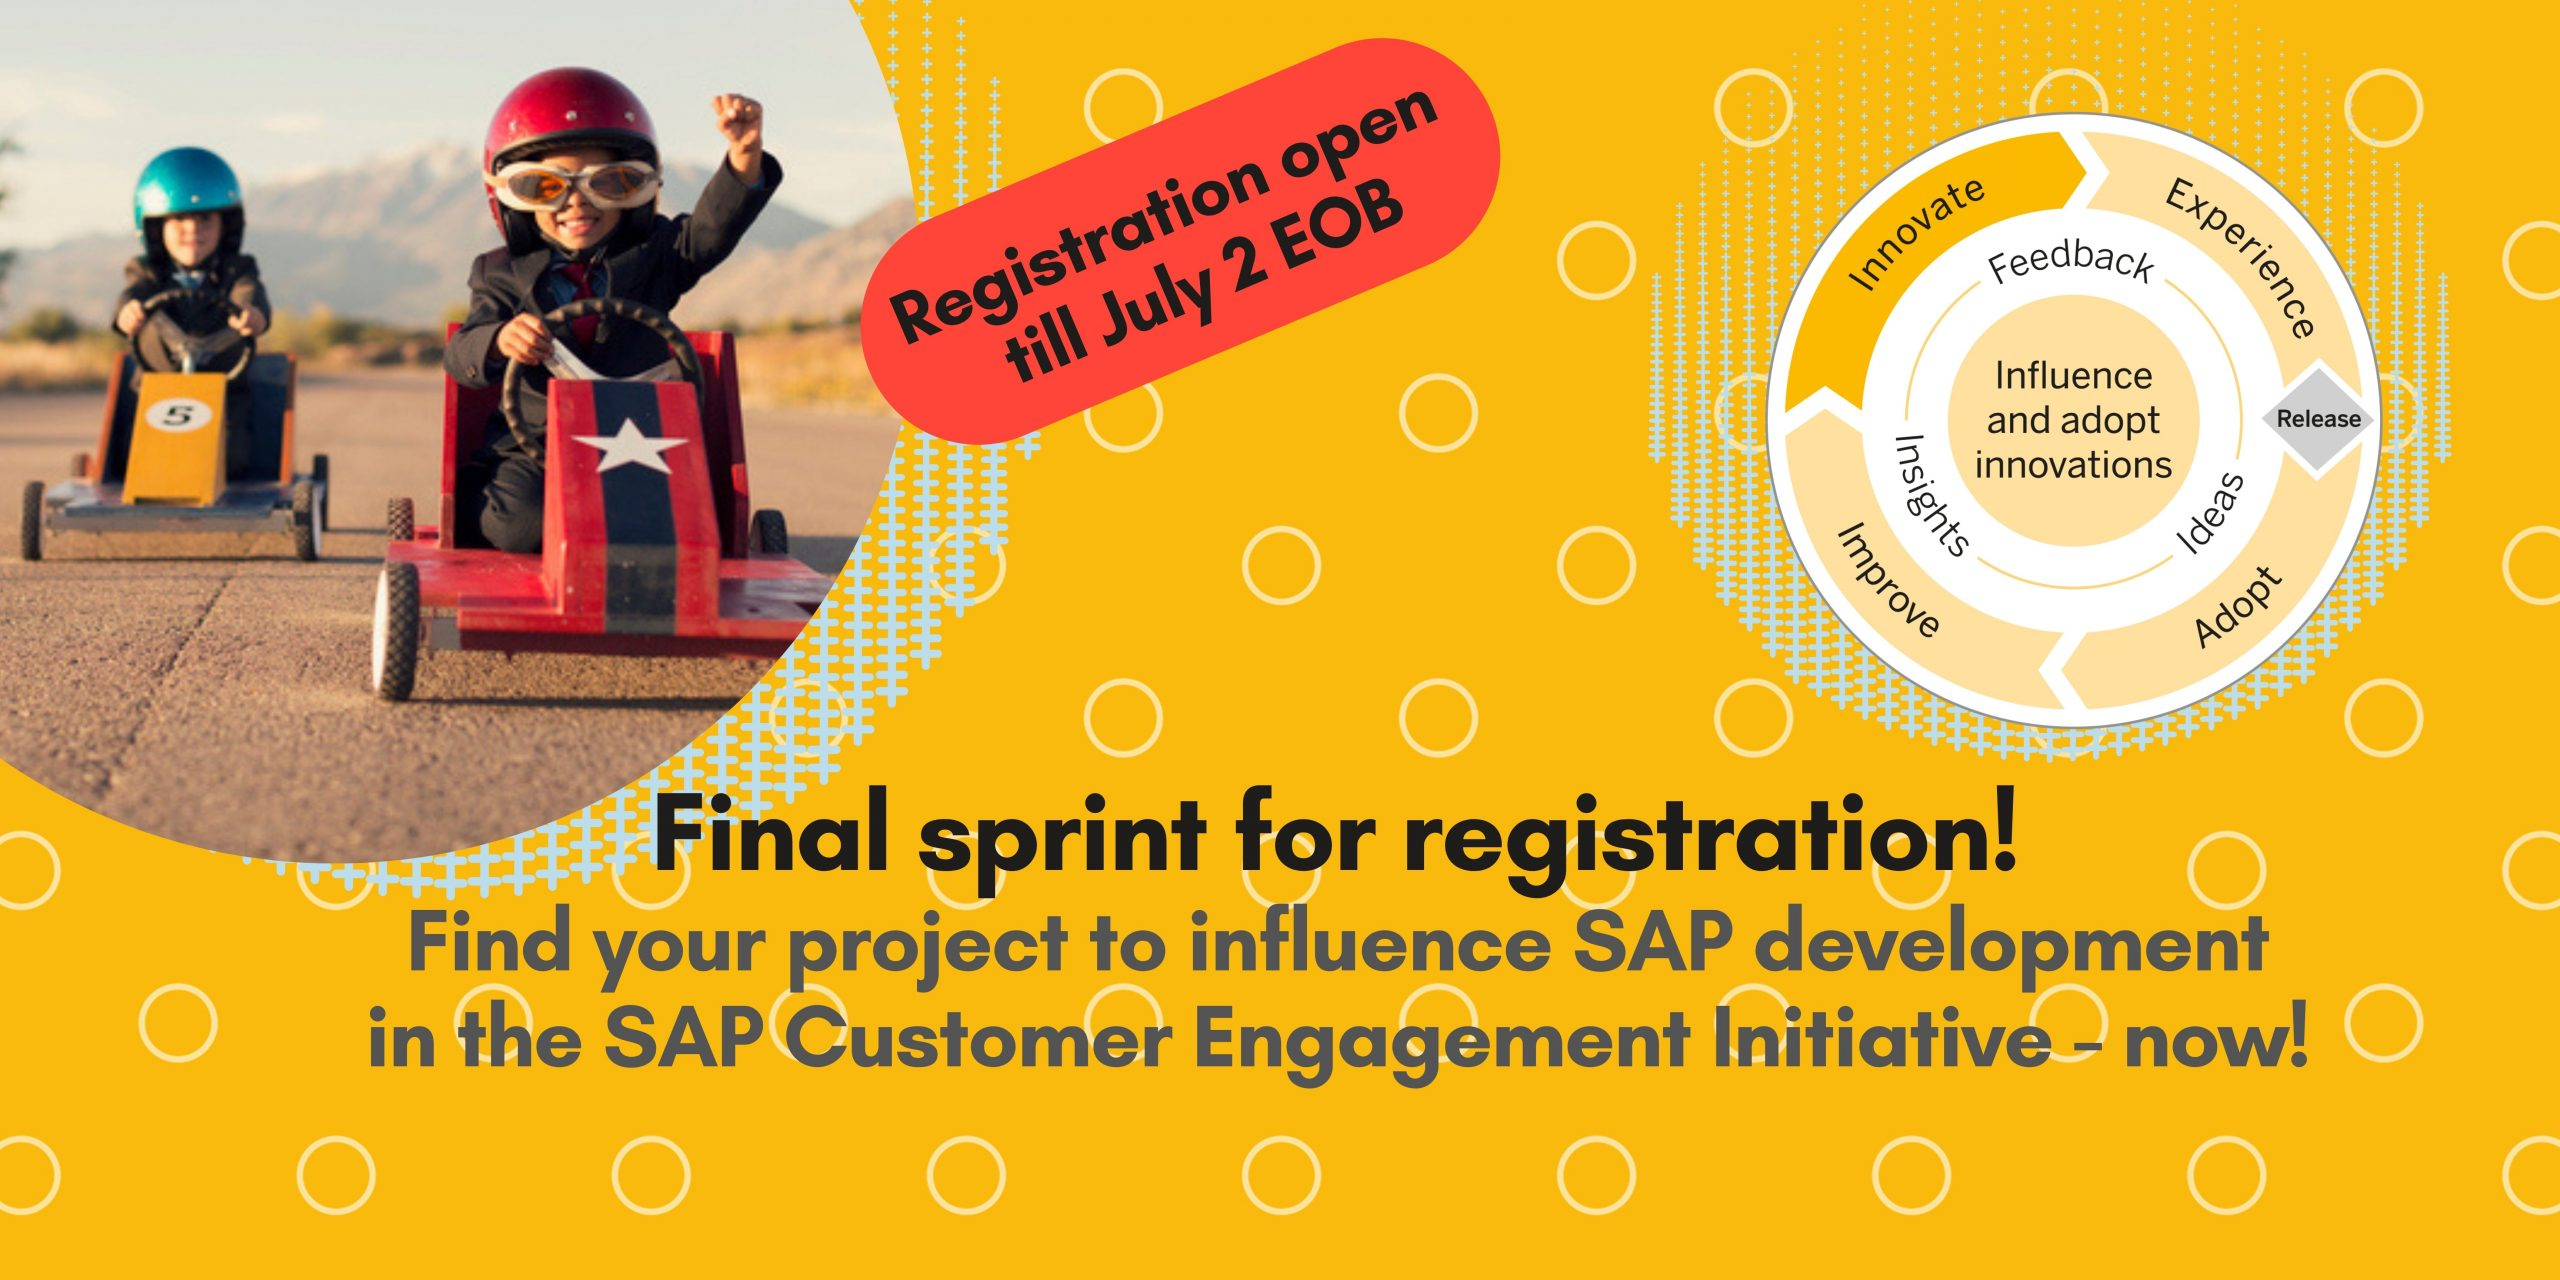 Final%20sprint%20to%20register%20for%20CEI%20projects%20on%20influence.sap.com